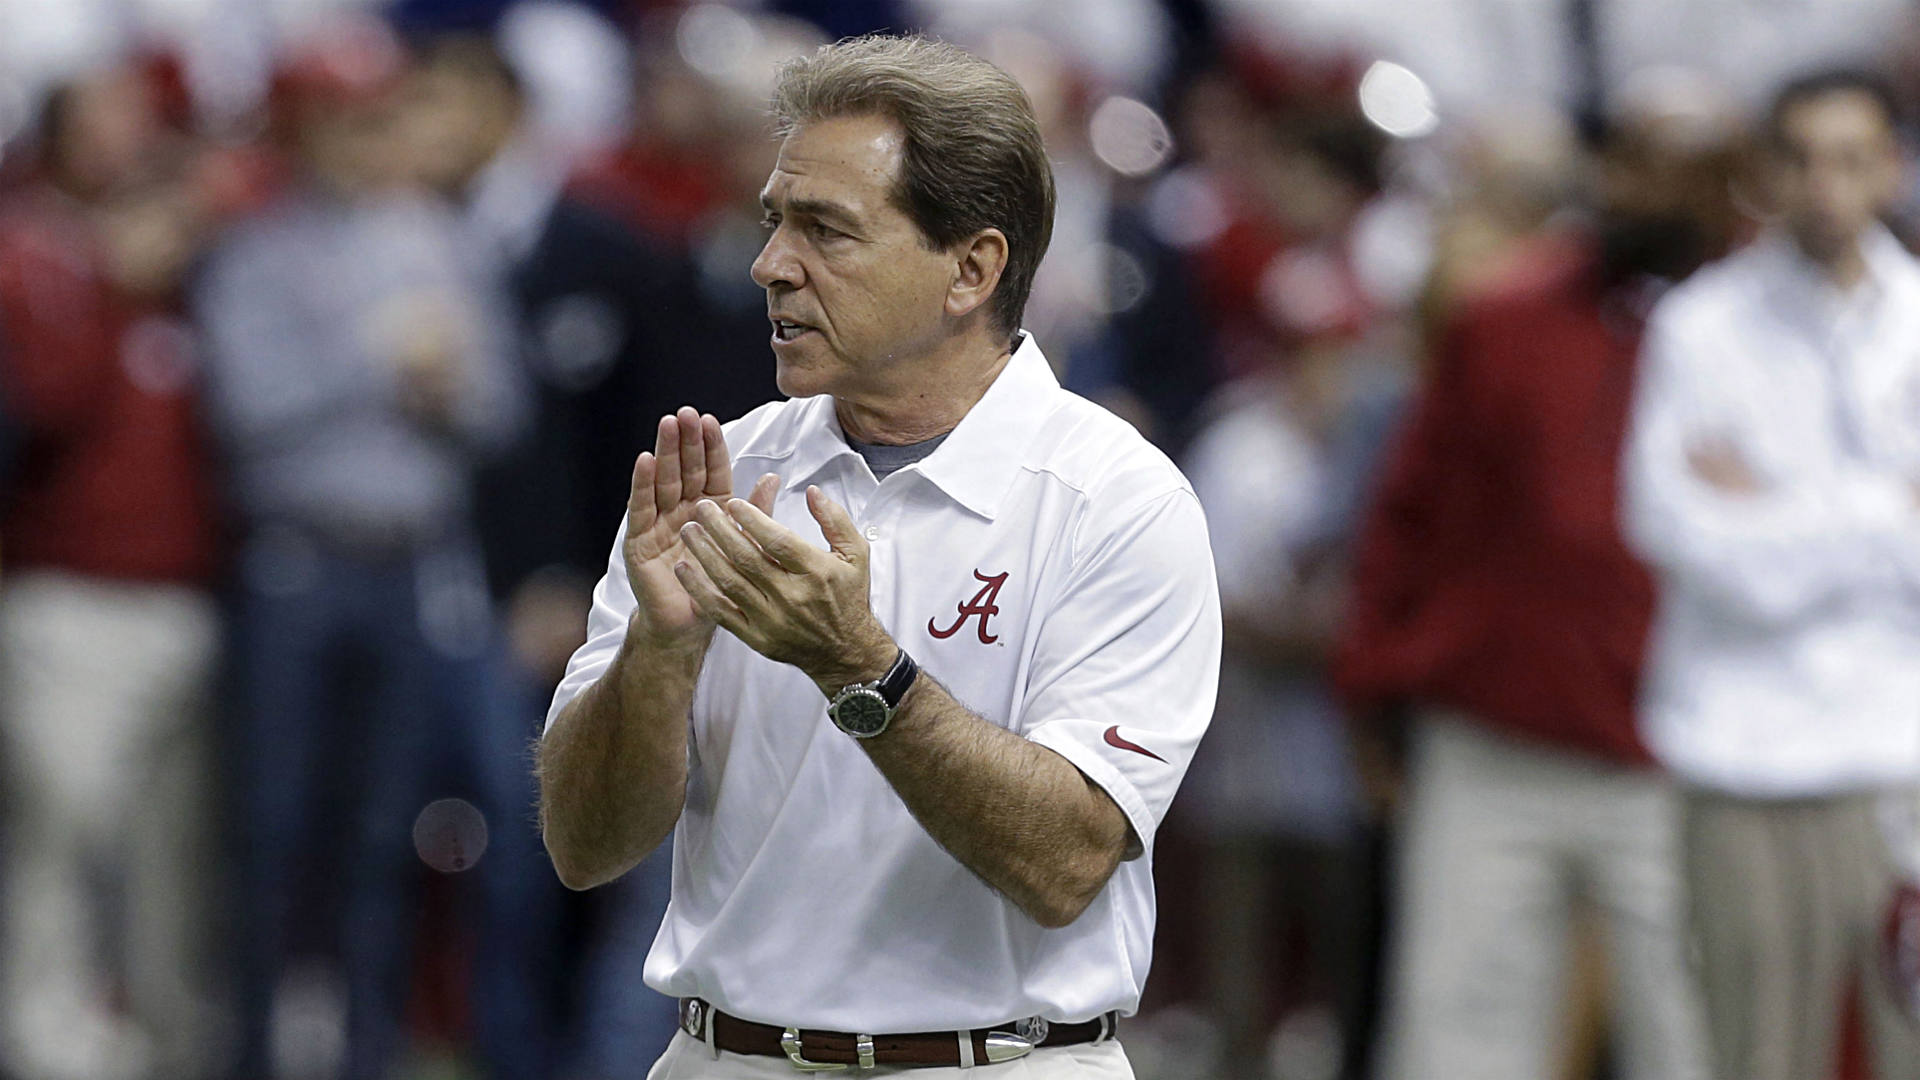 Nick-Saban-FTR-020514-AP